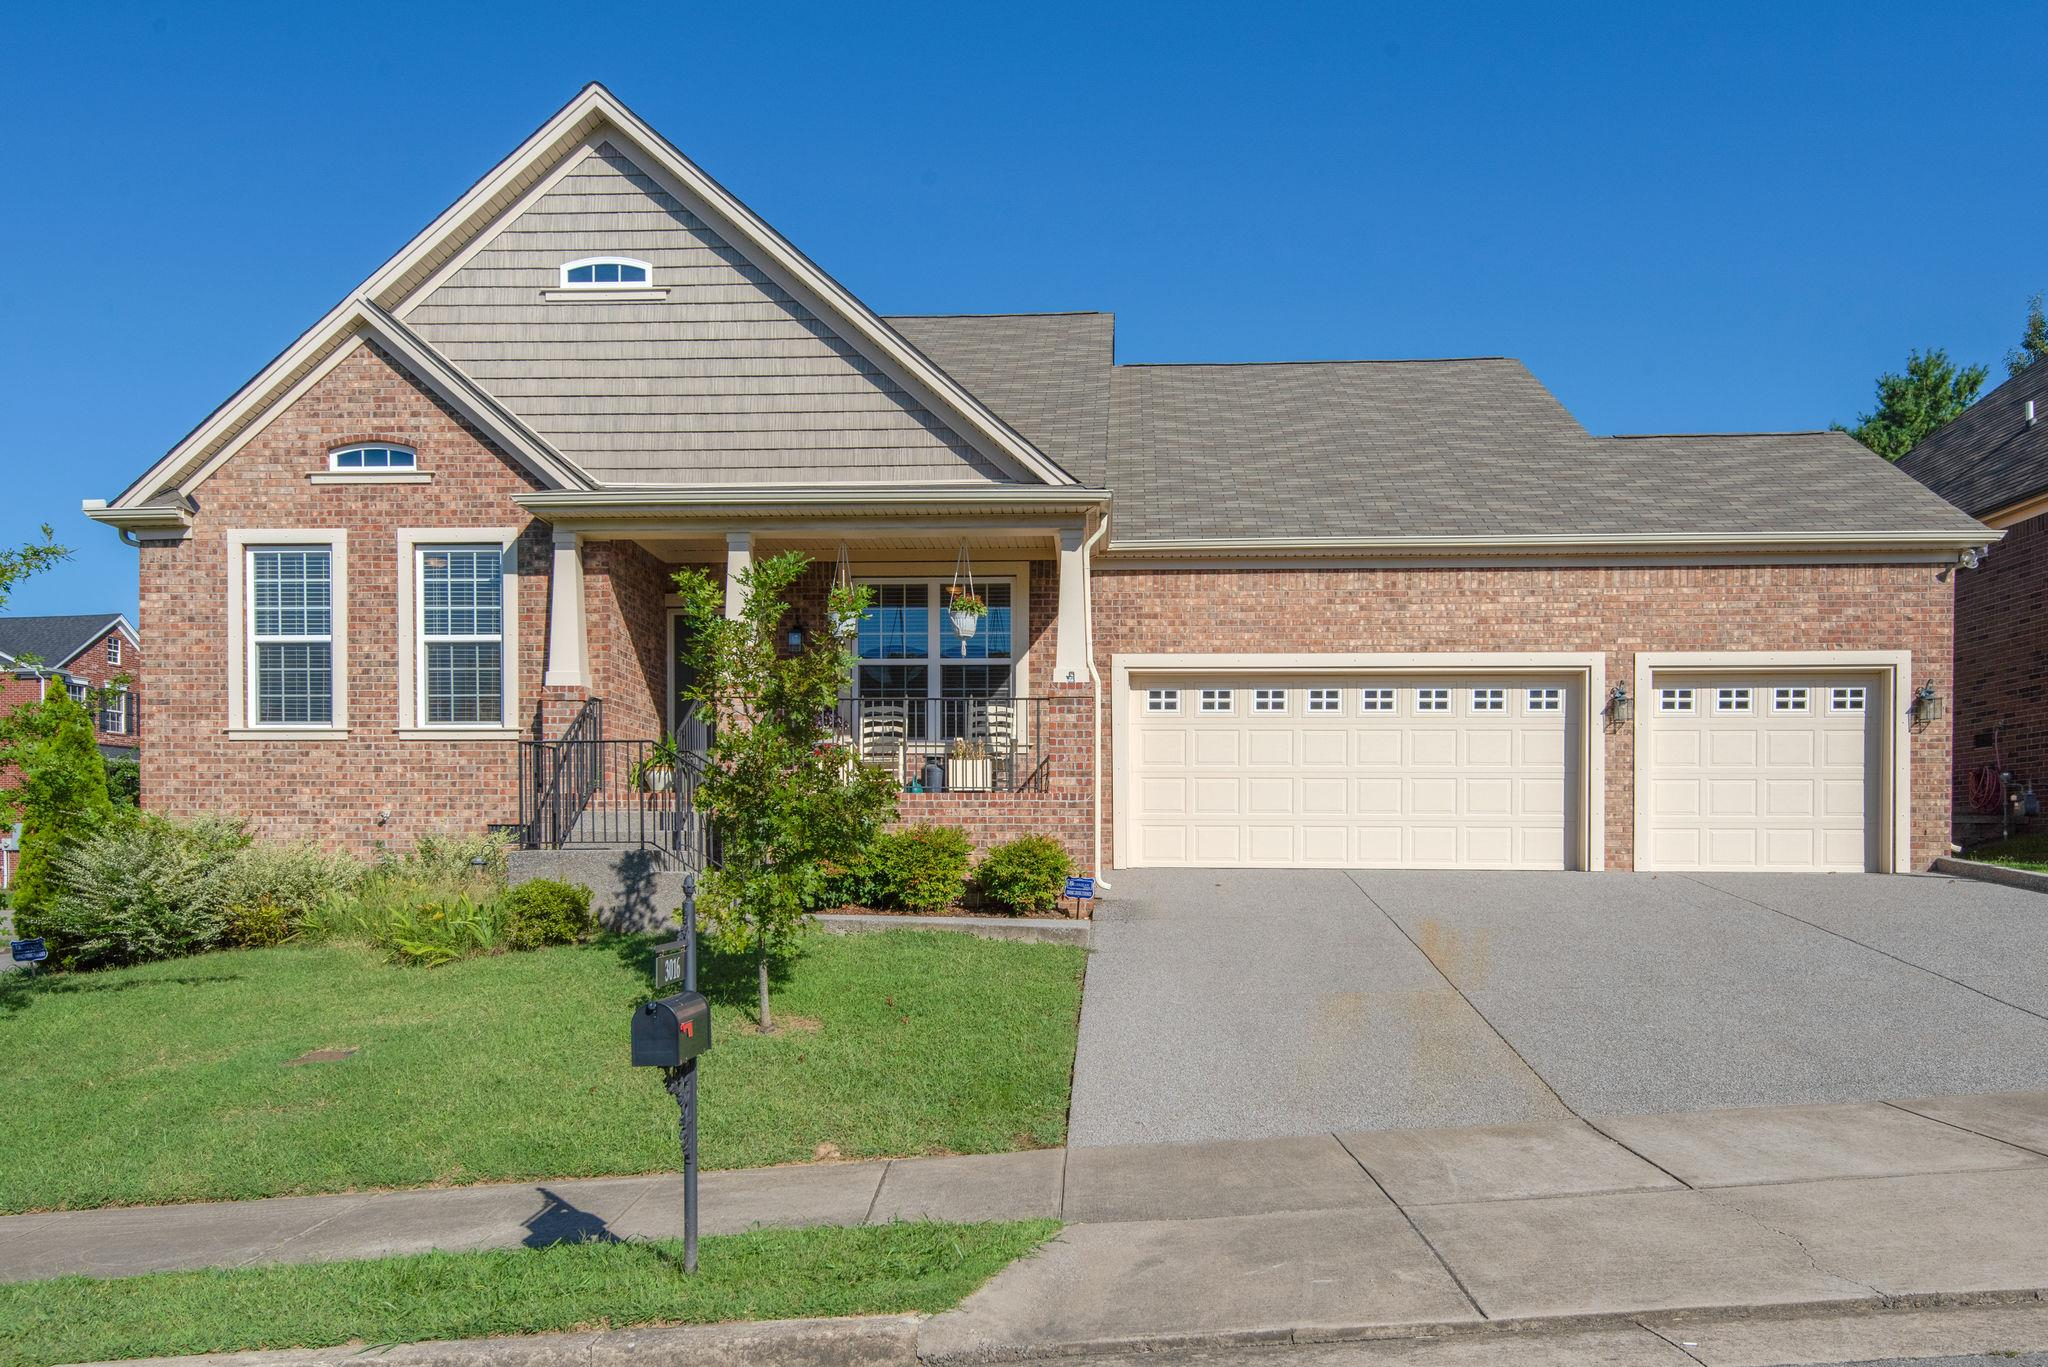 3016 Barnes Bend Dr, Antioch, TN 37013 - Antioch, TN real estate listing